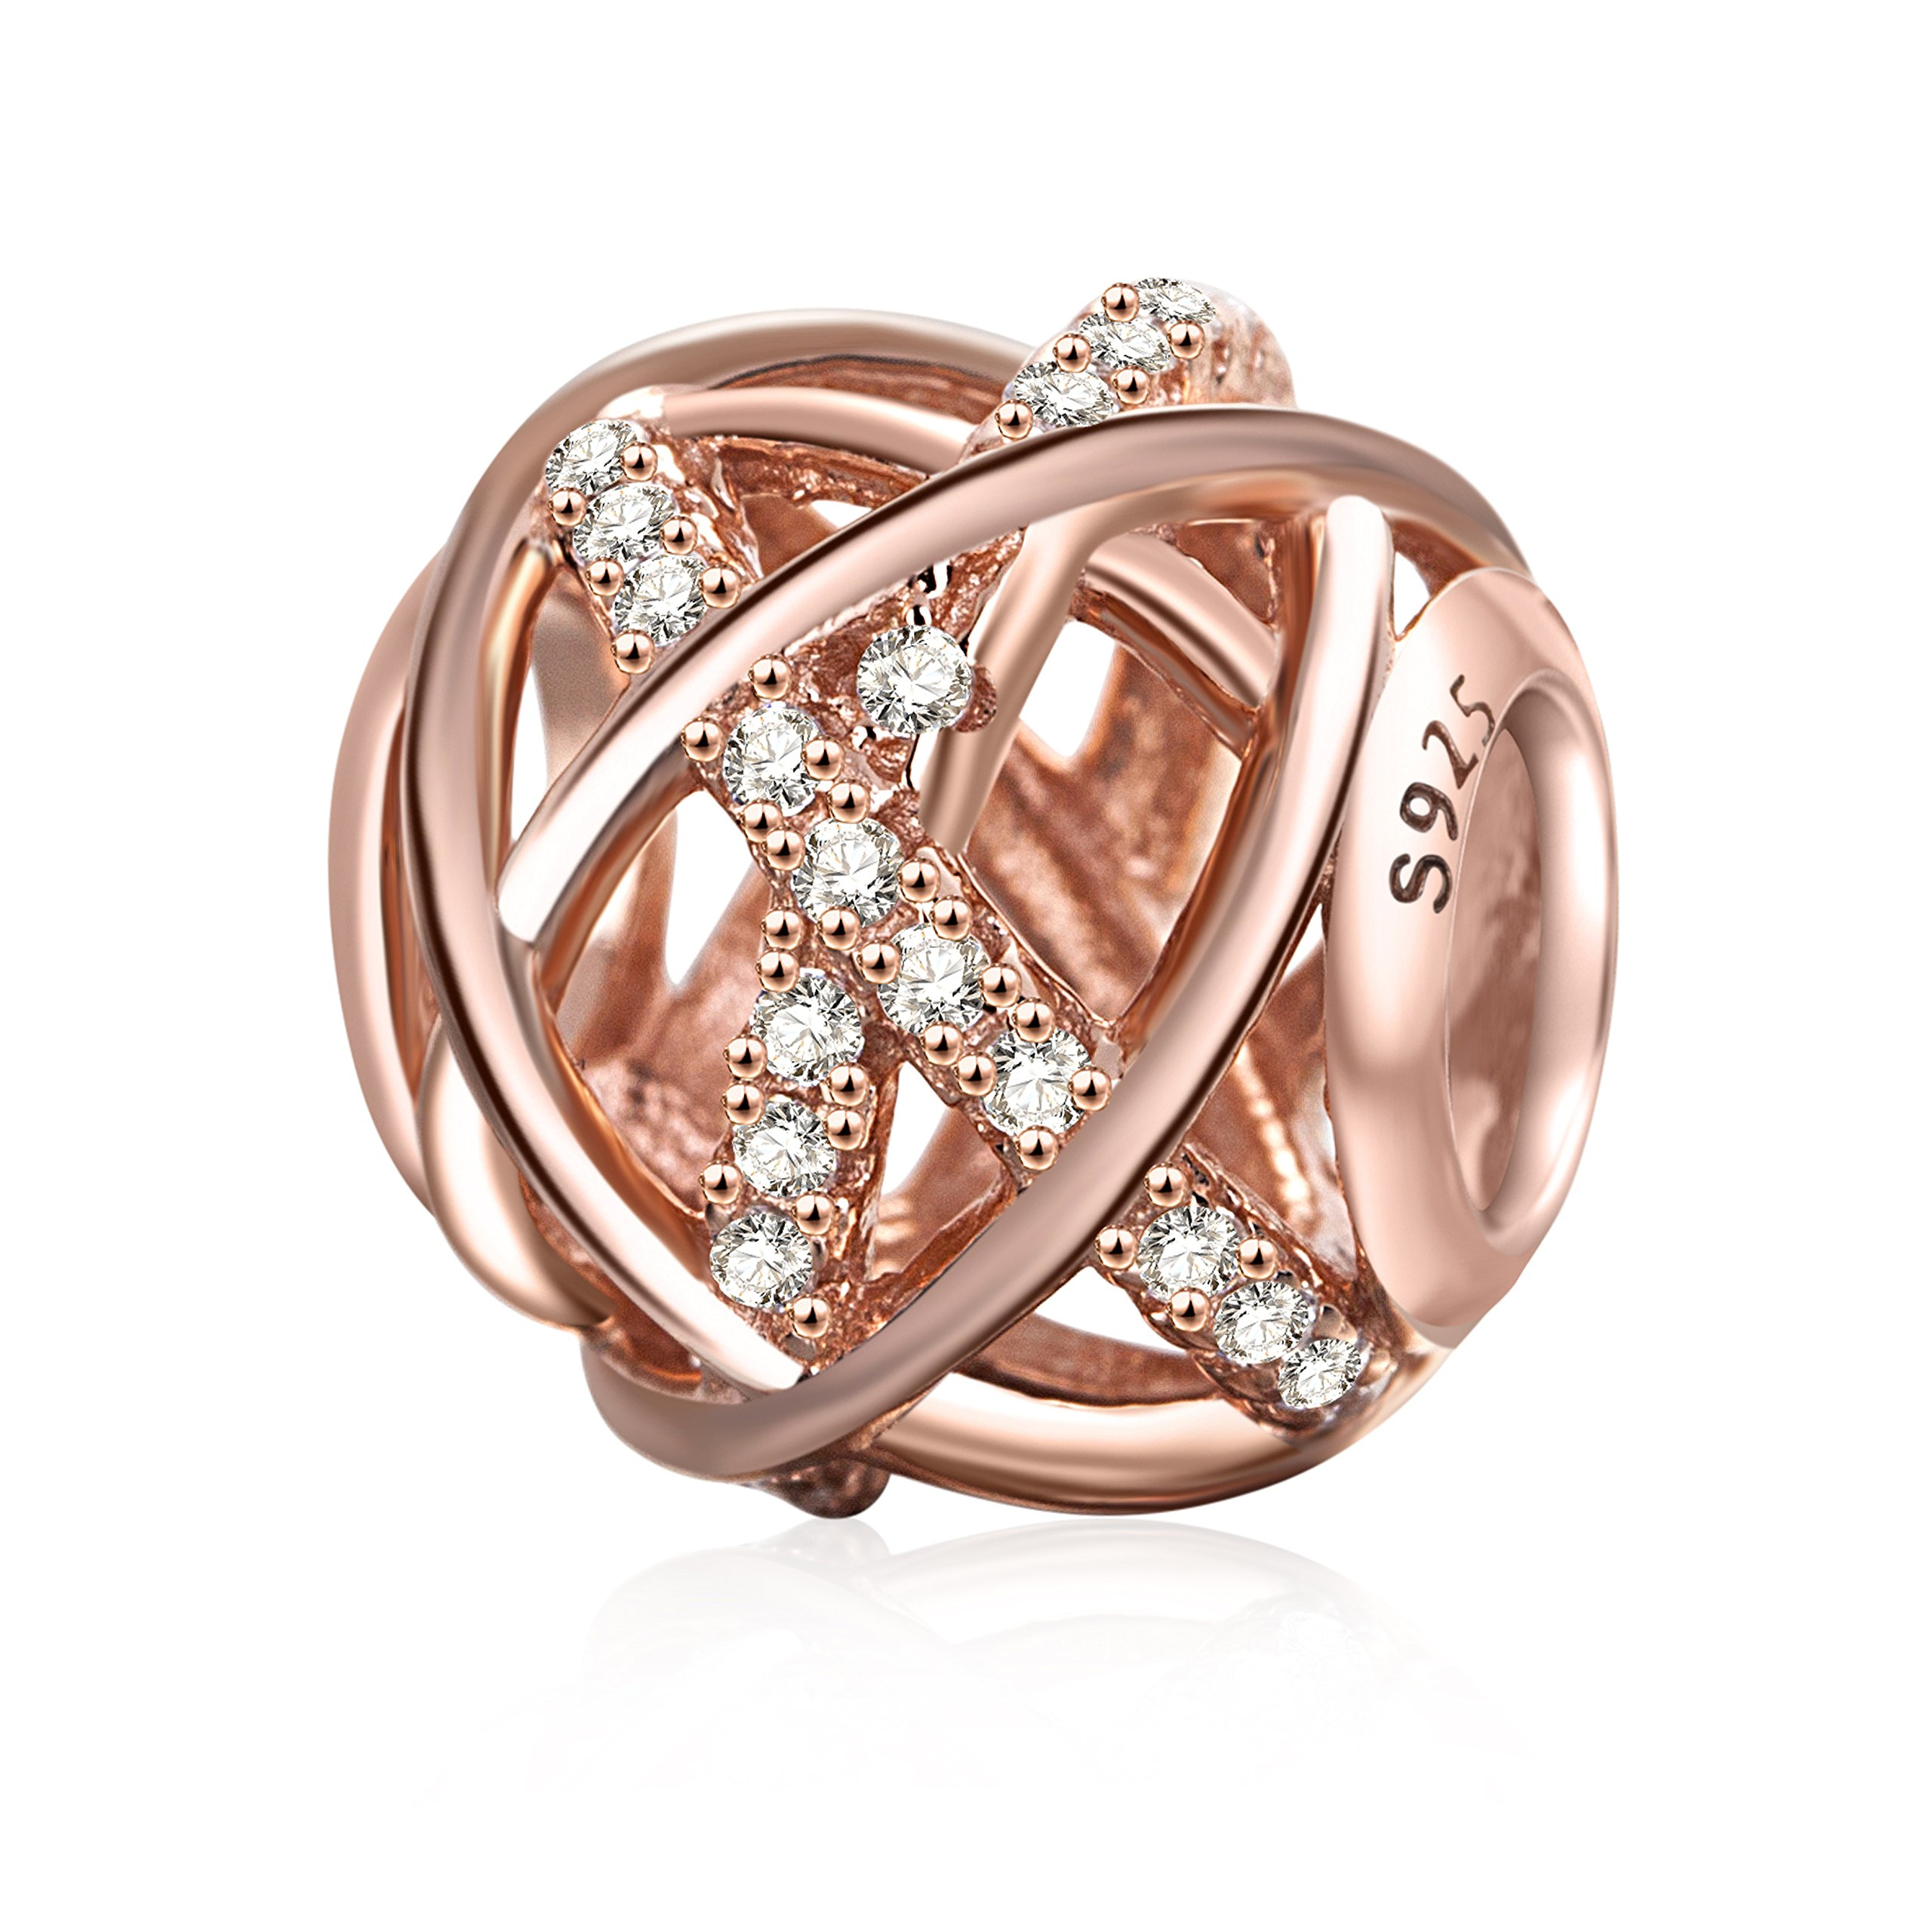 SOUKISS Rose Gold Galaxy Charm Authentic 925 Sterling Silver Openwork Charms with Clear CZ for European Bracelet by SOUKISS